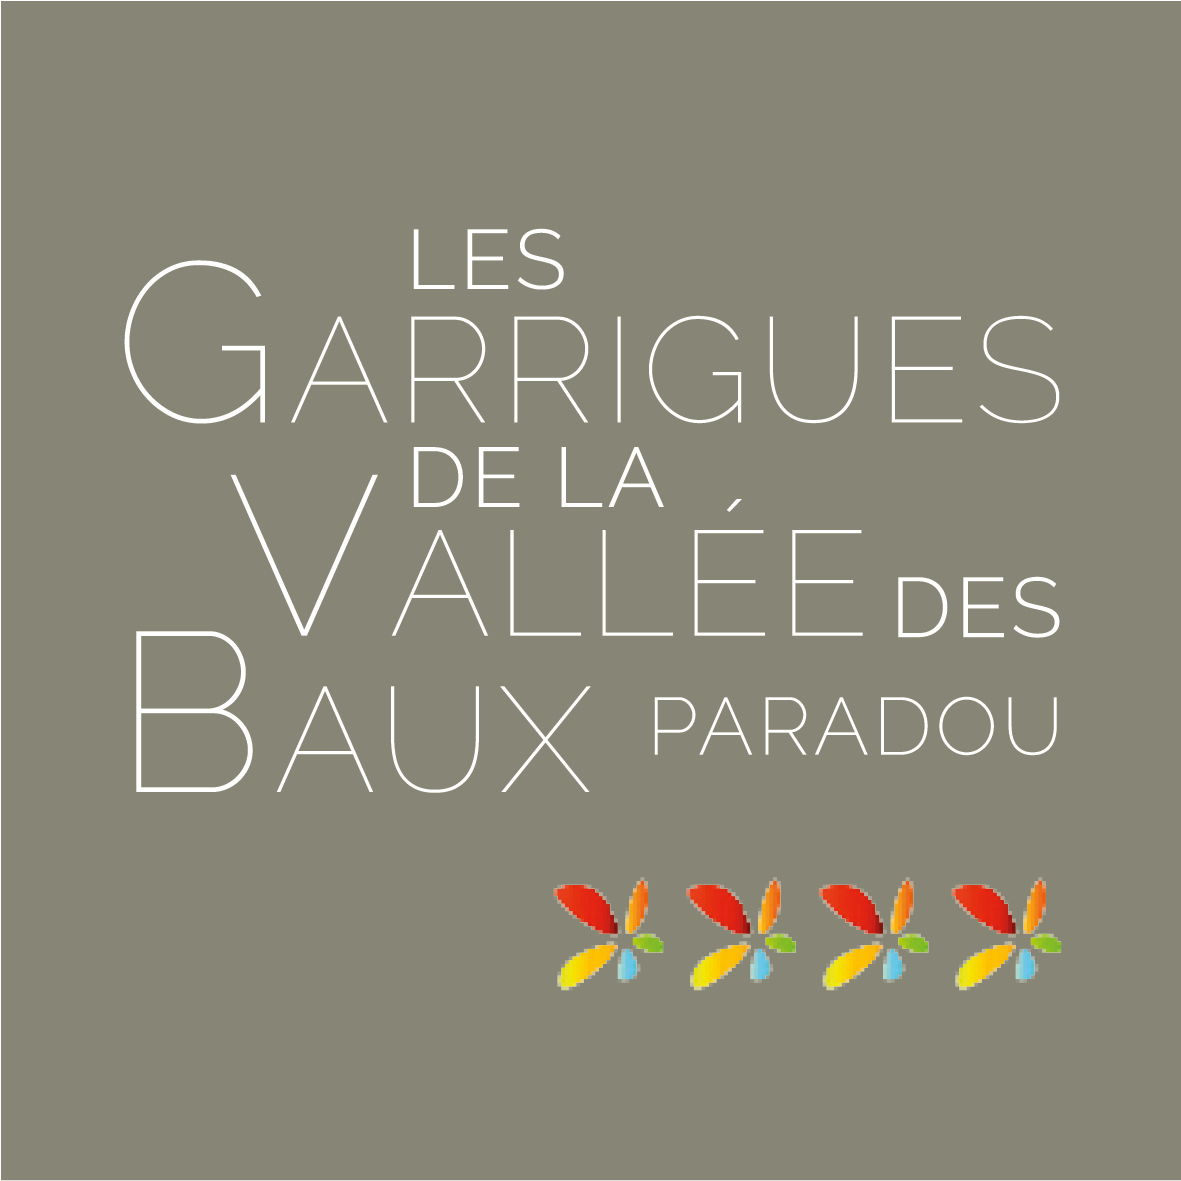 Best Of The Place - Les Garrigues de la vallée des Baux